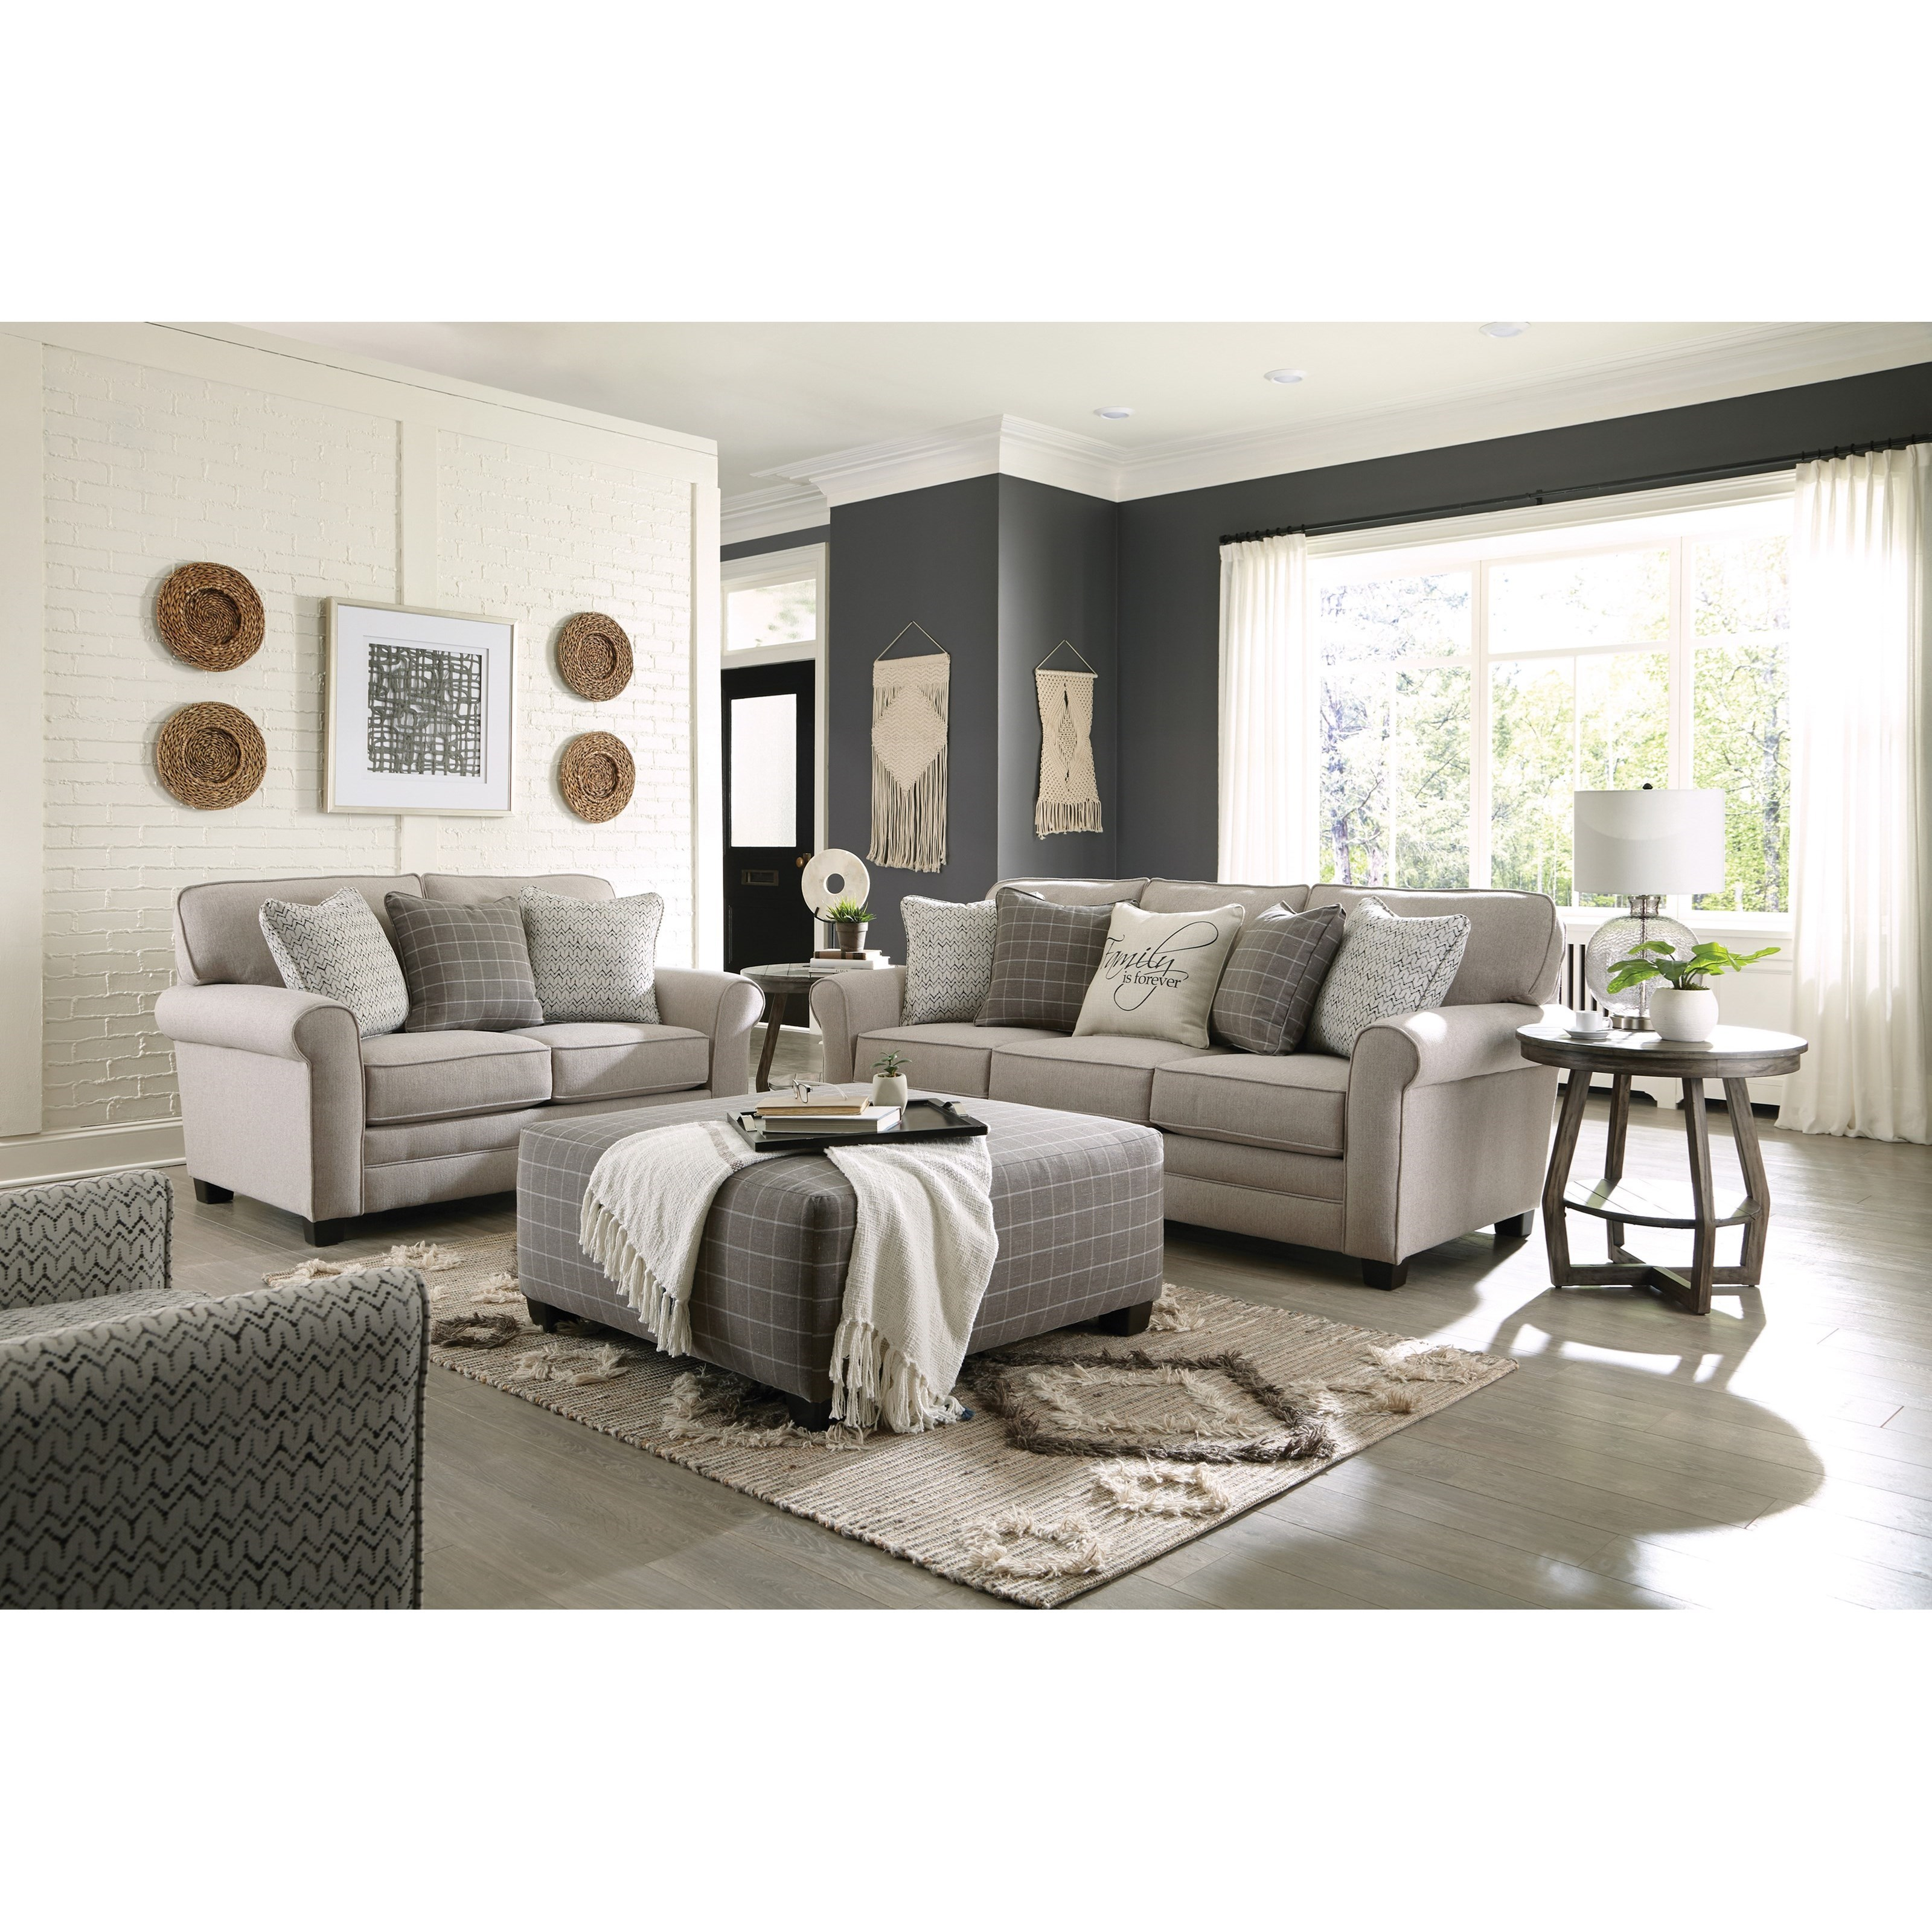 Lewiston Stationary Living Room Group by Jackson Furniture at Northeast Factory Direct